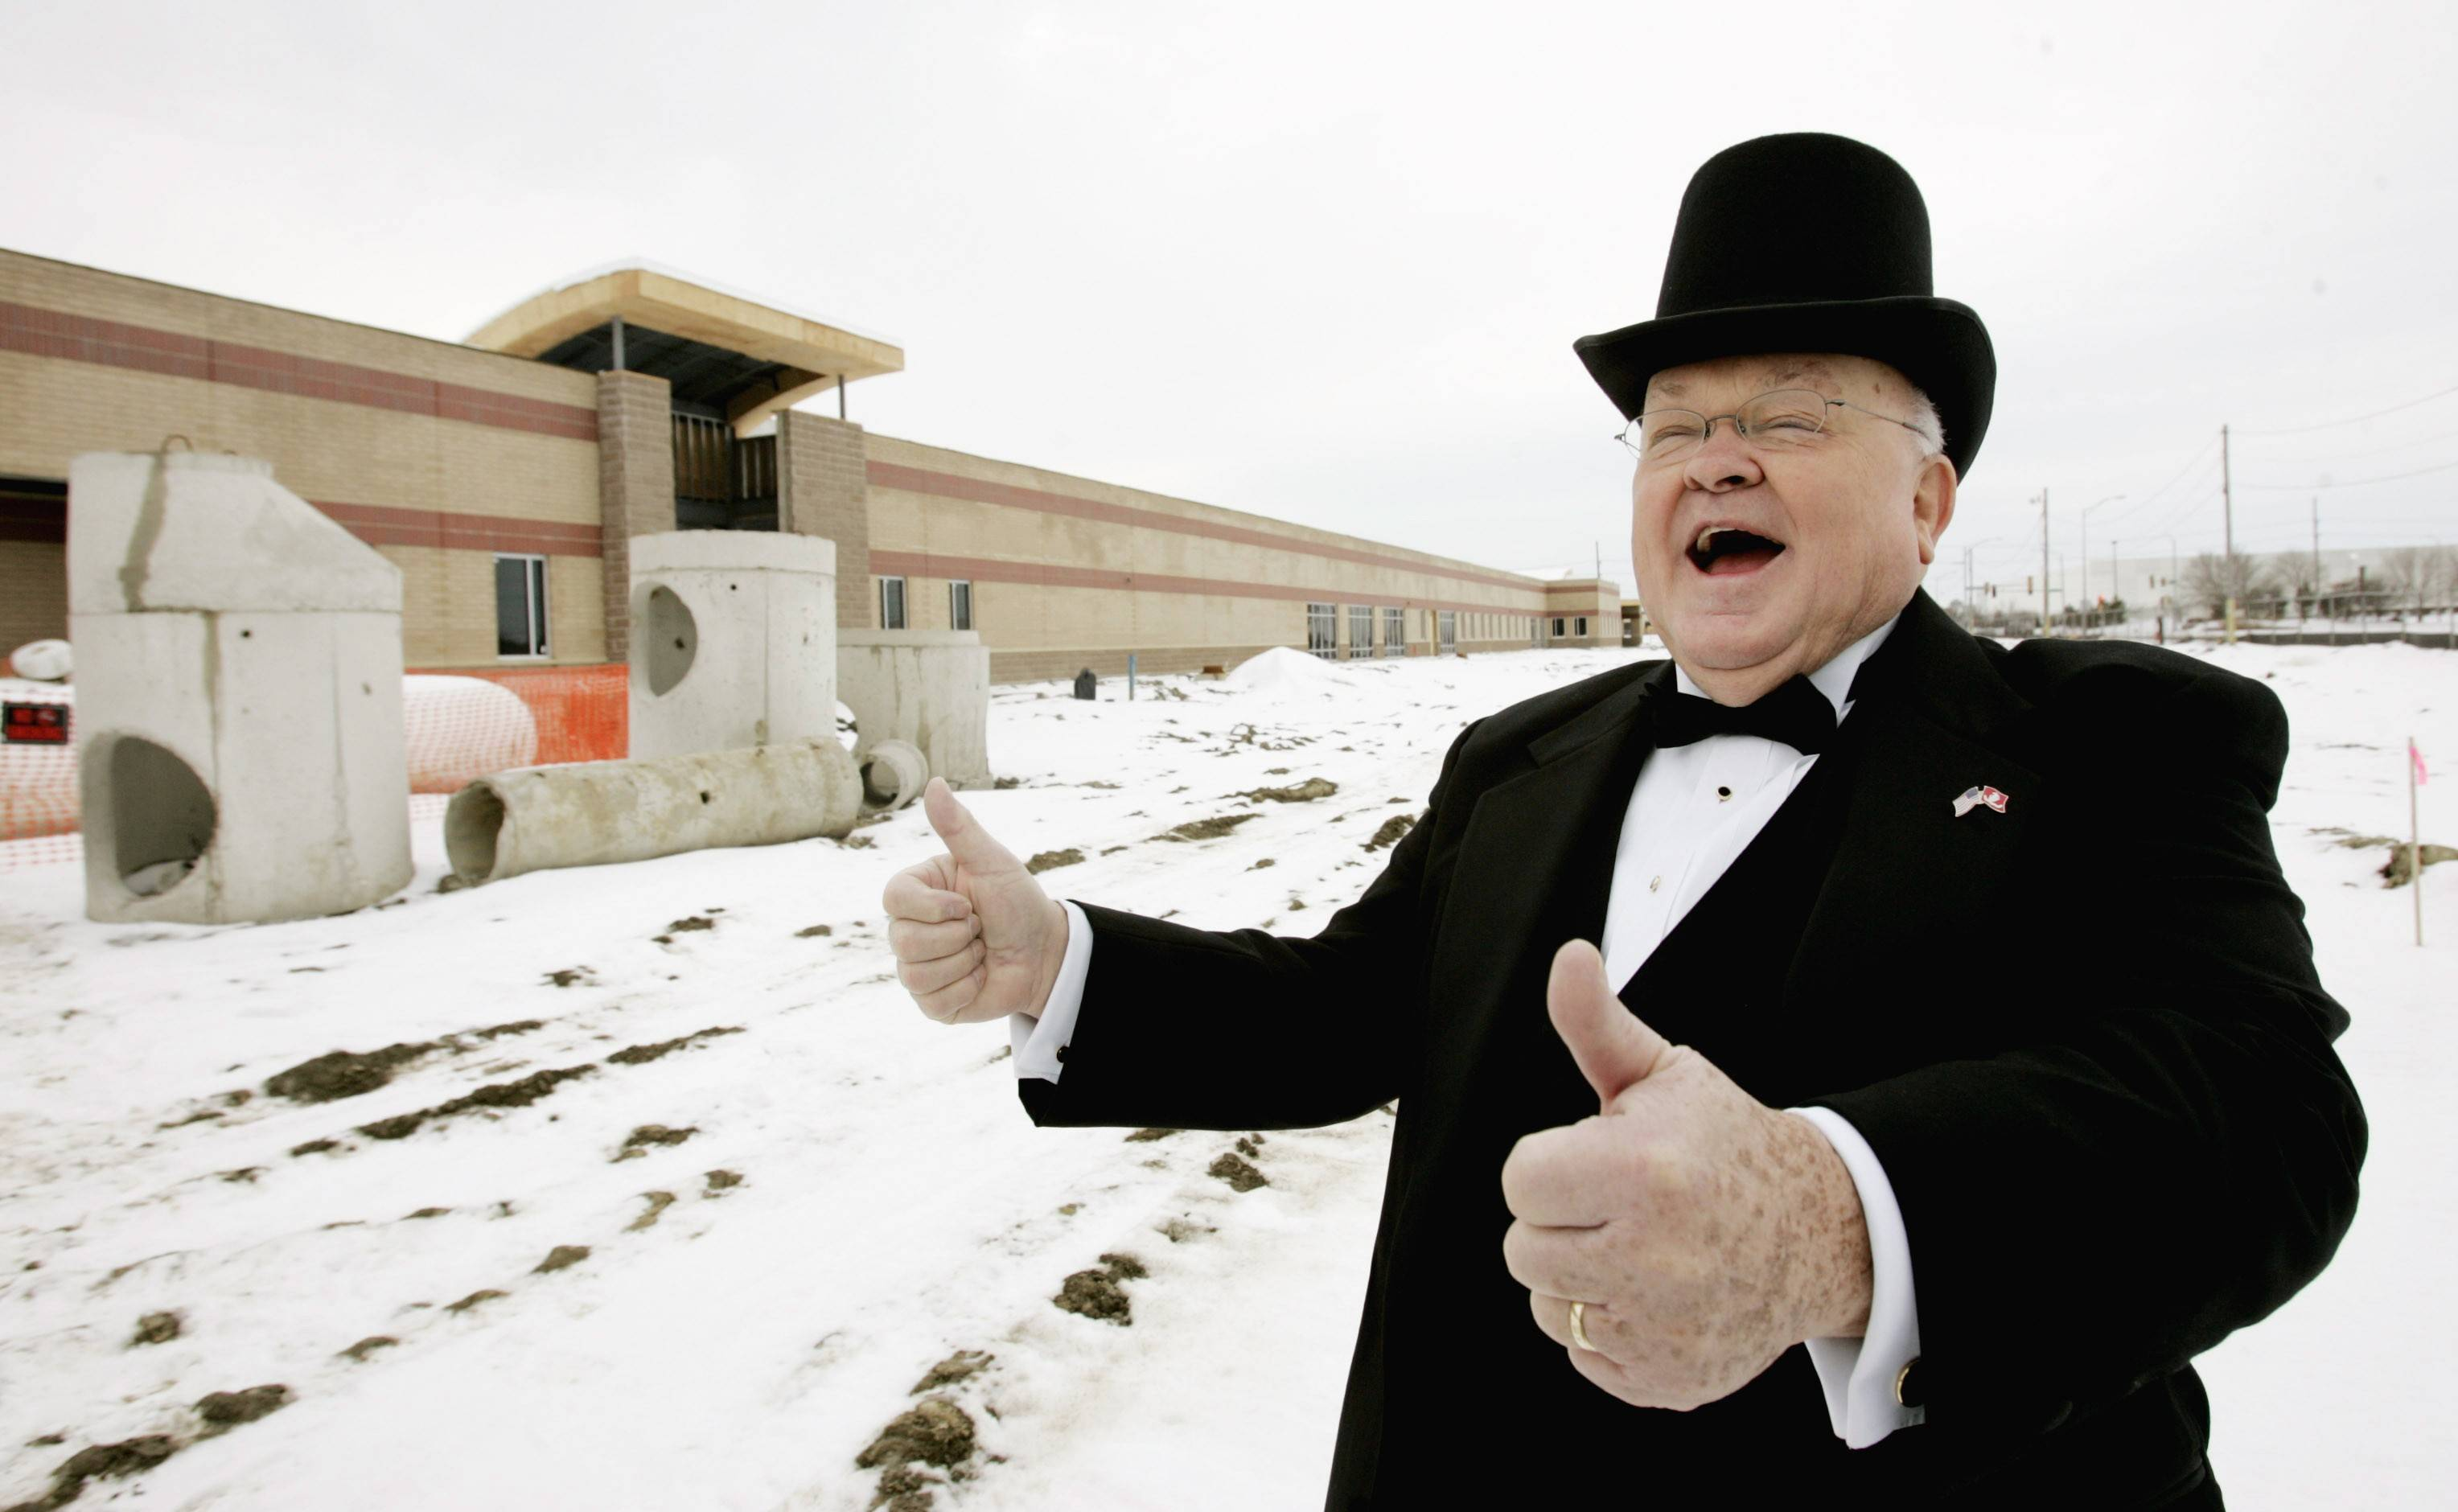 Naperville Mayor George Pradel at a new public works bldg. in Naperville.